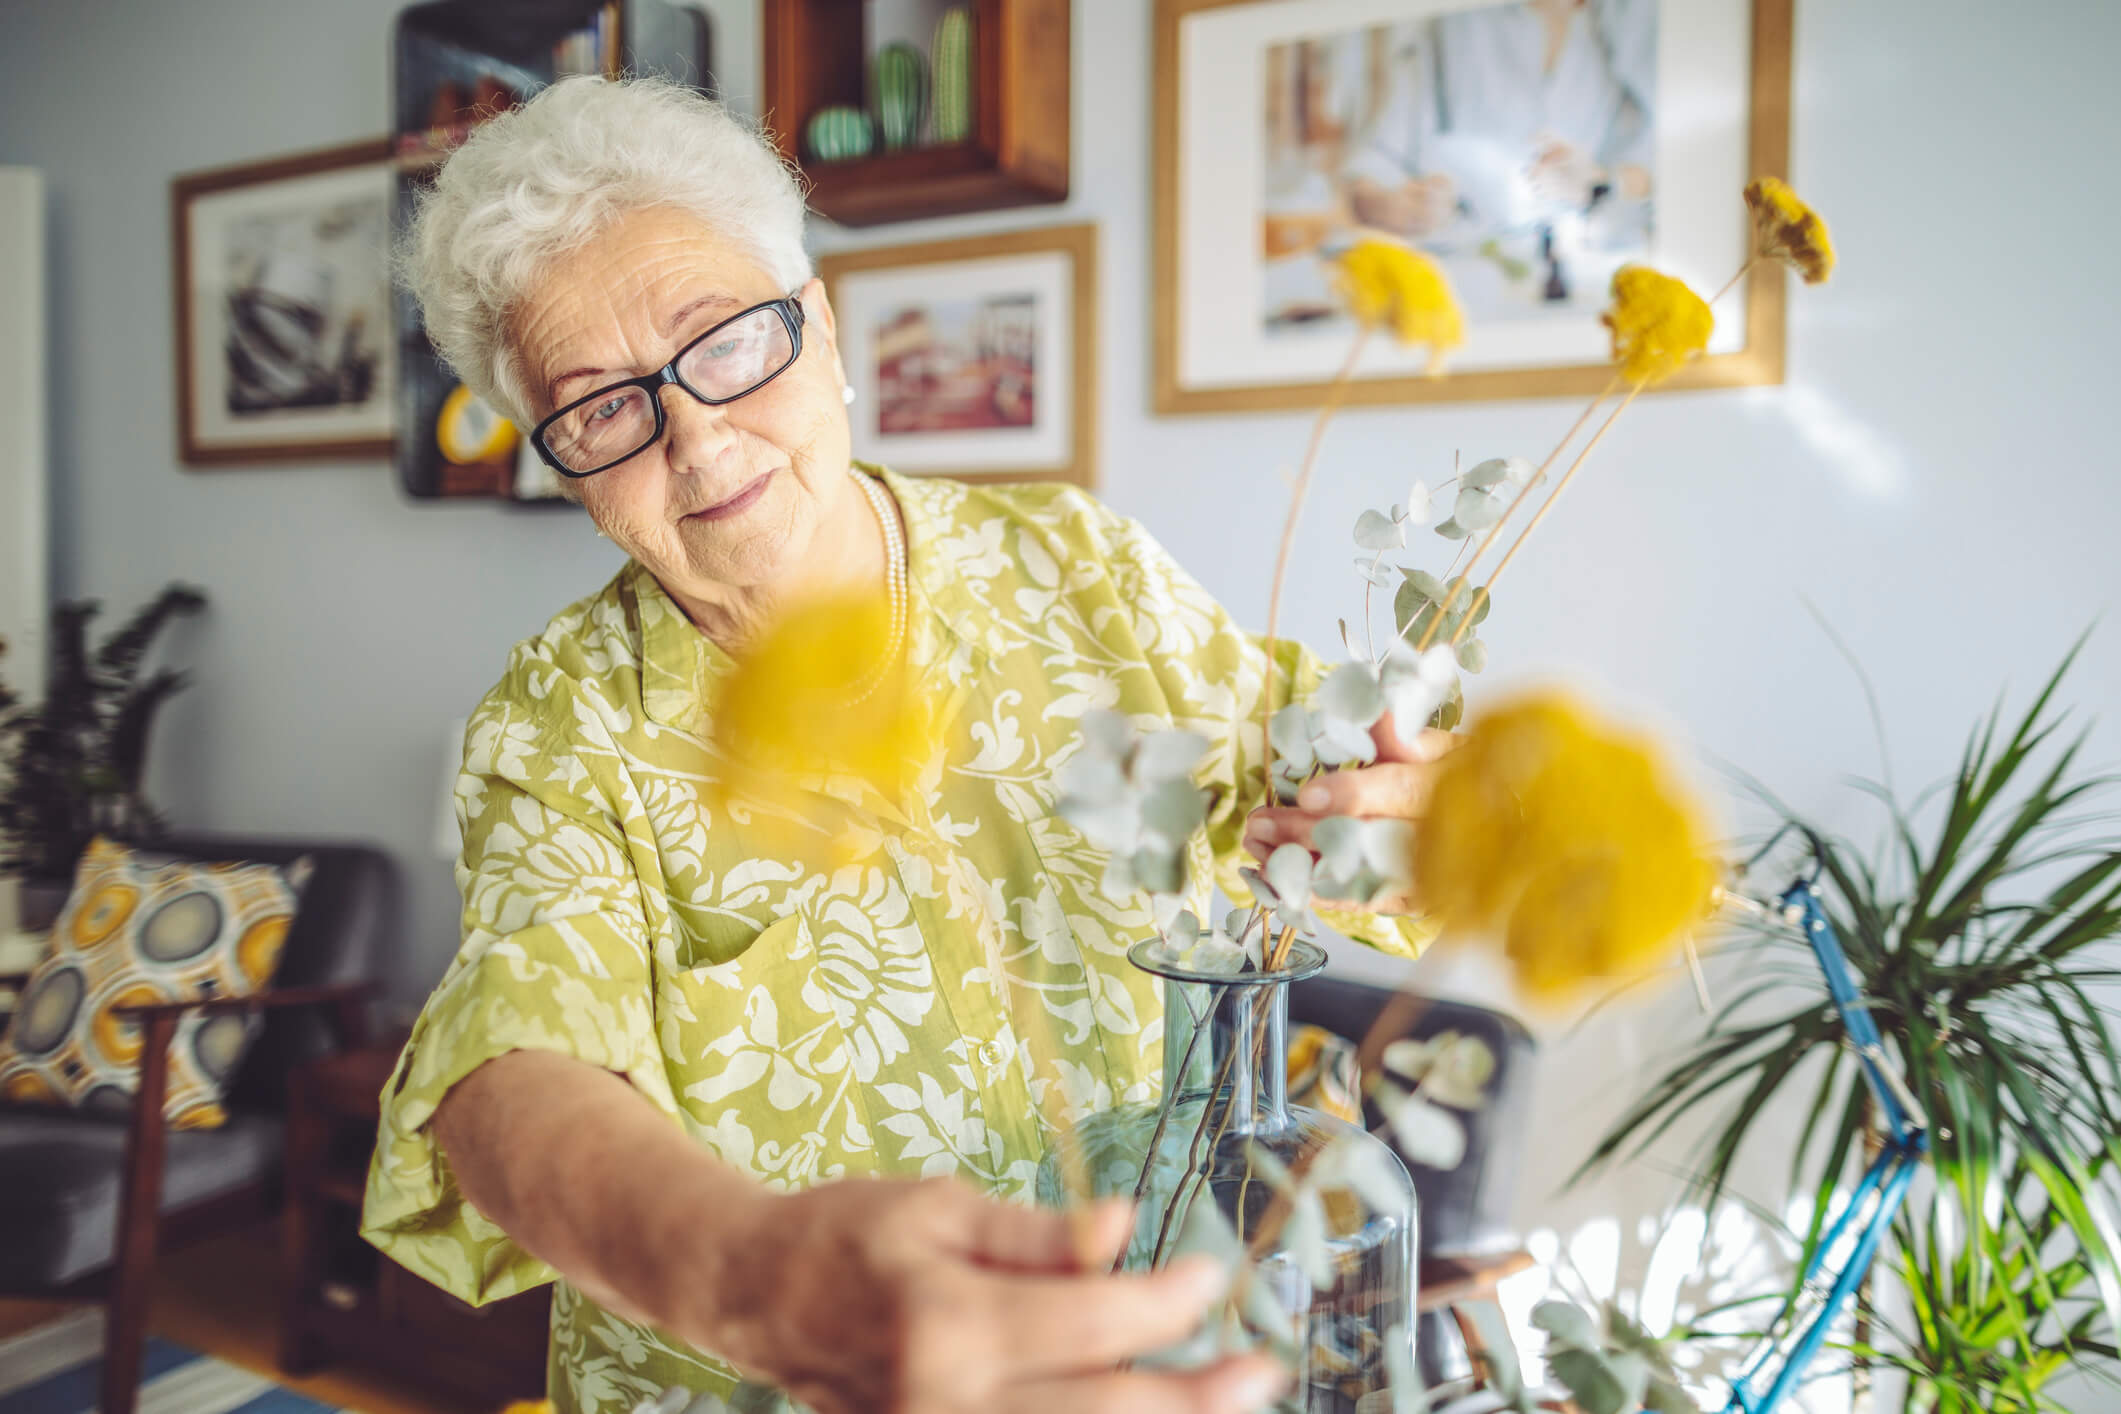 Senior woman decorating flowers in her home.